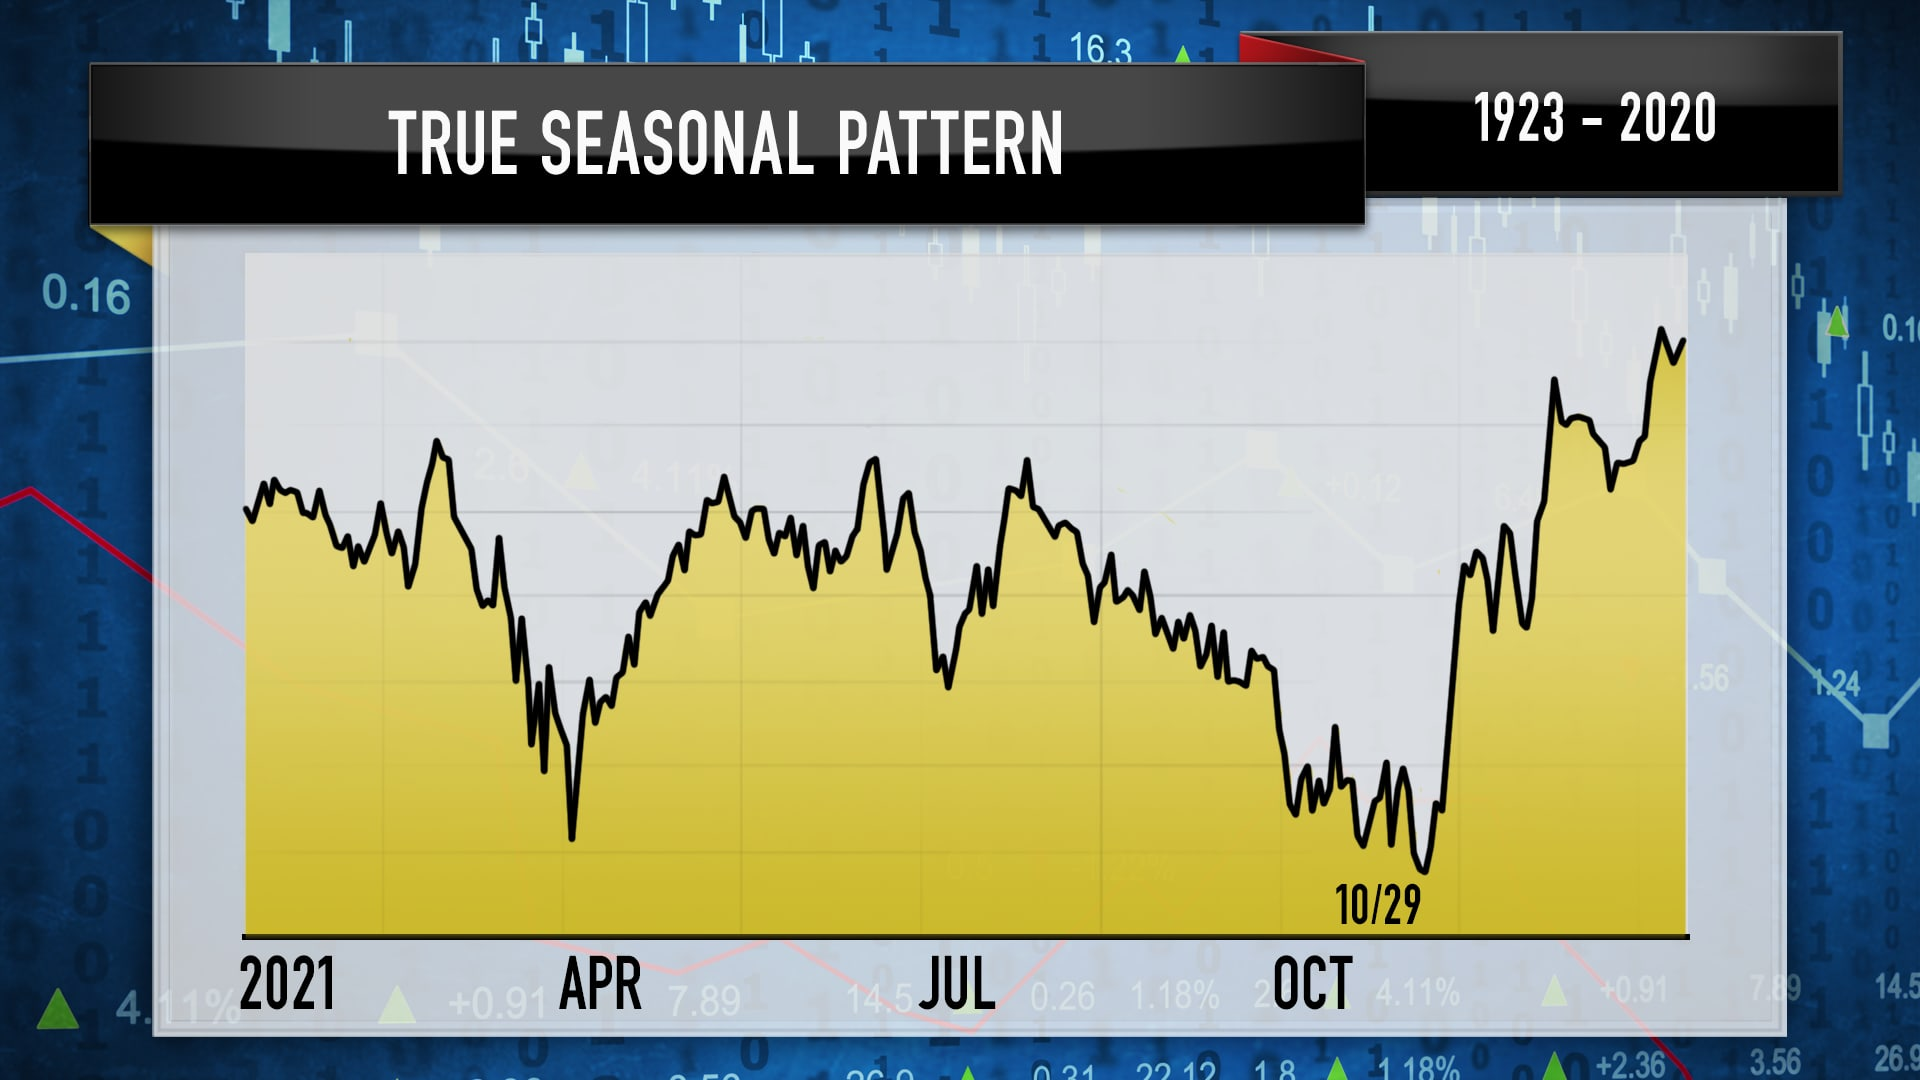 A Chart from the 10/08 episode of Mad Money